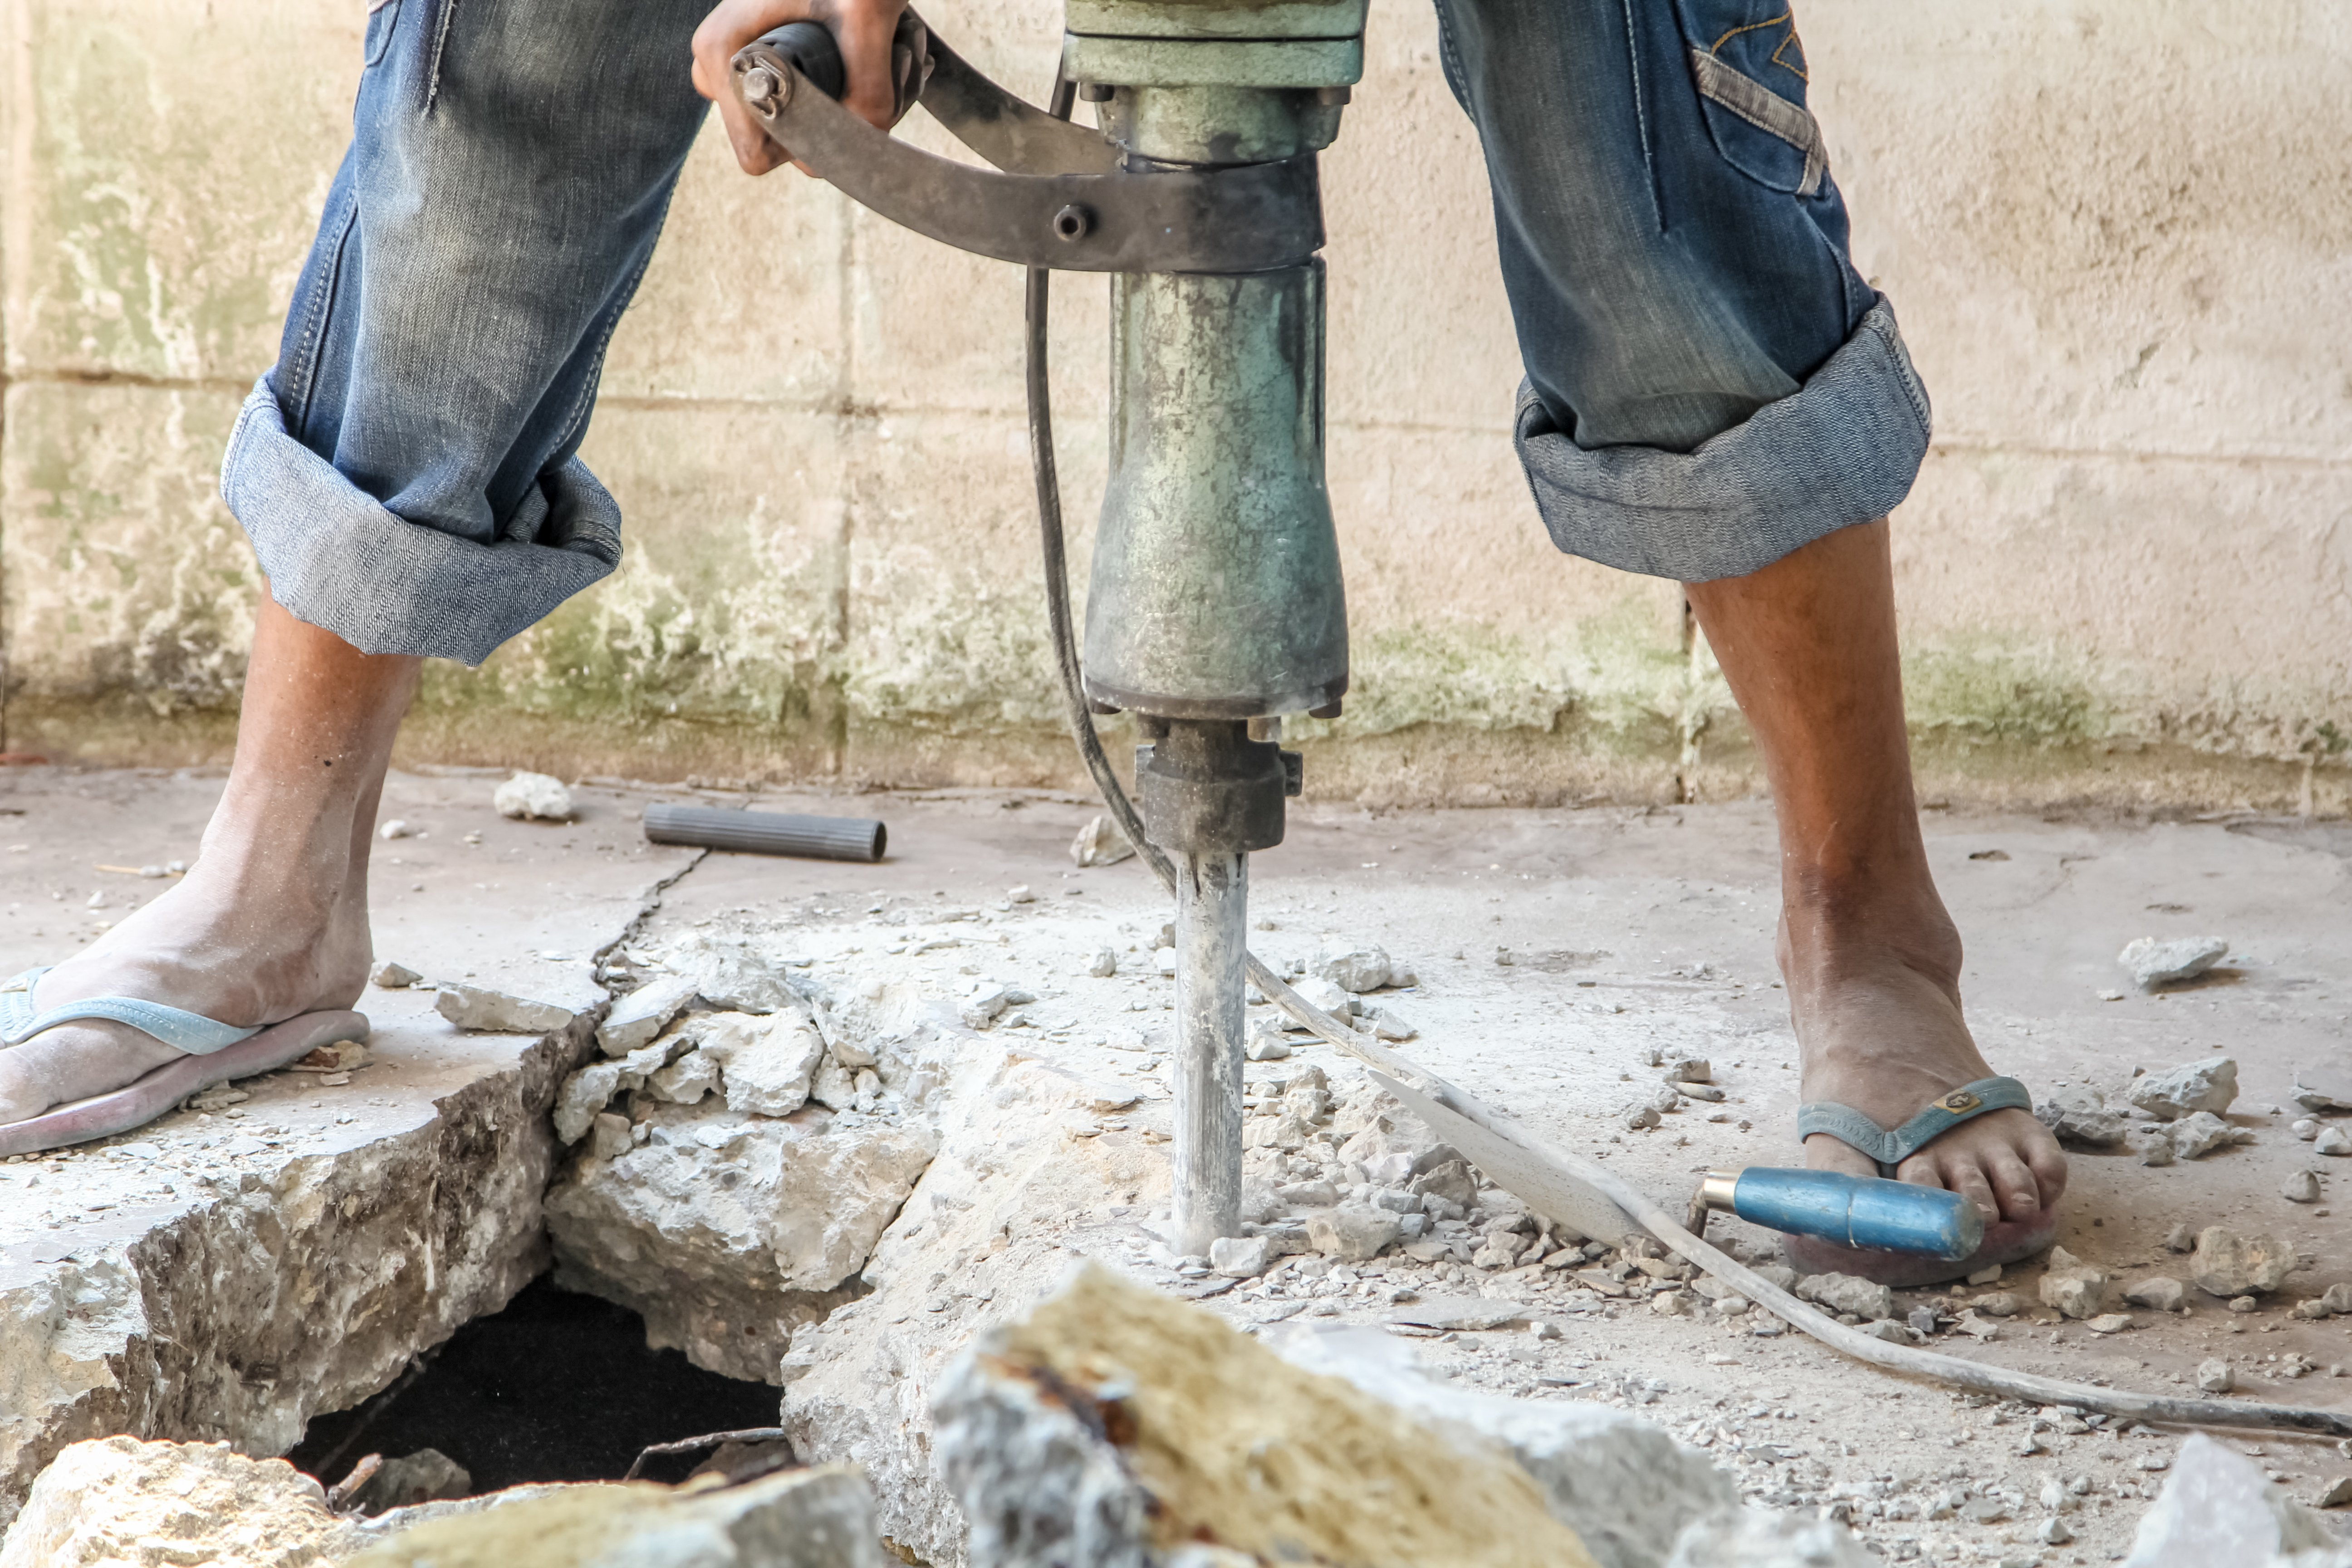 Workers using a pneumatic hammer drills can develop conditions including hand-arm vibration syndrome